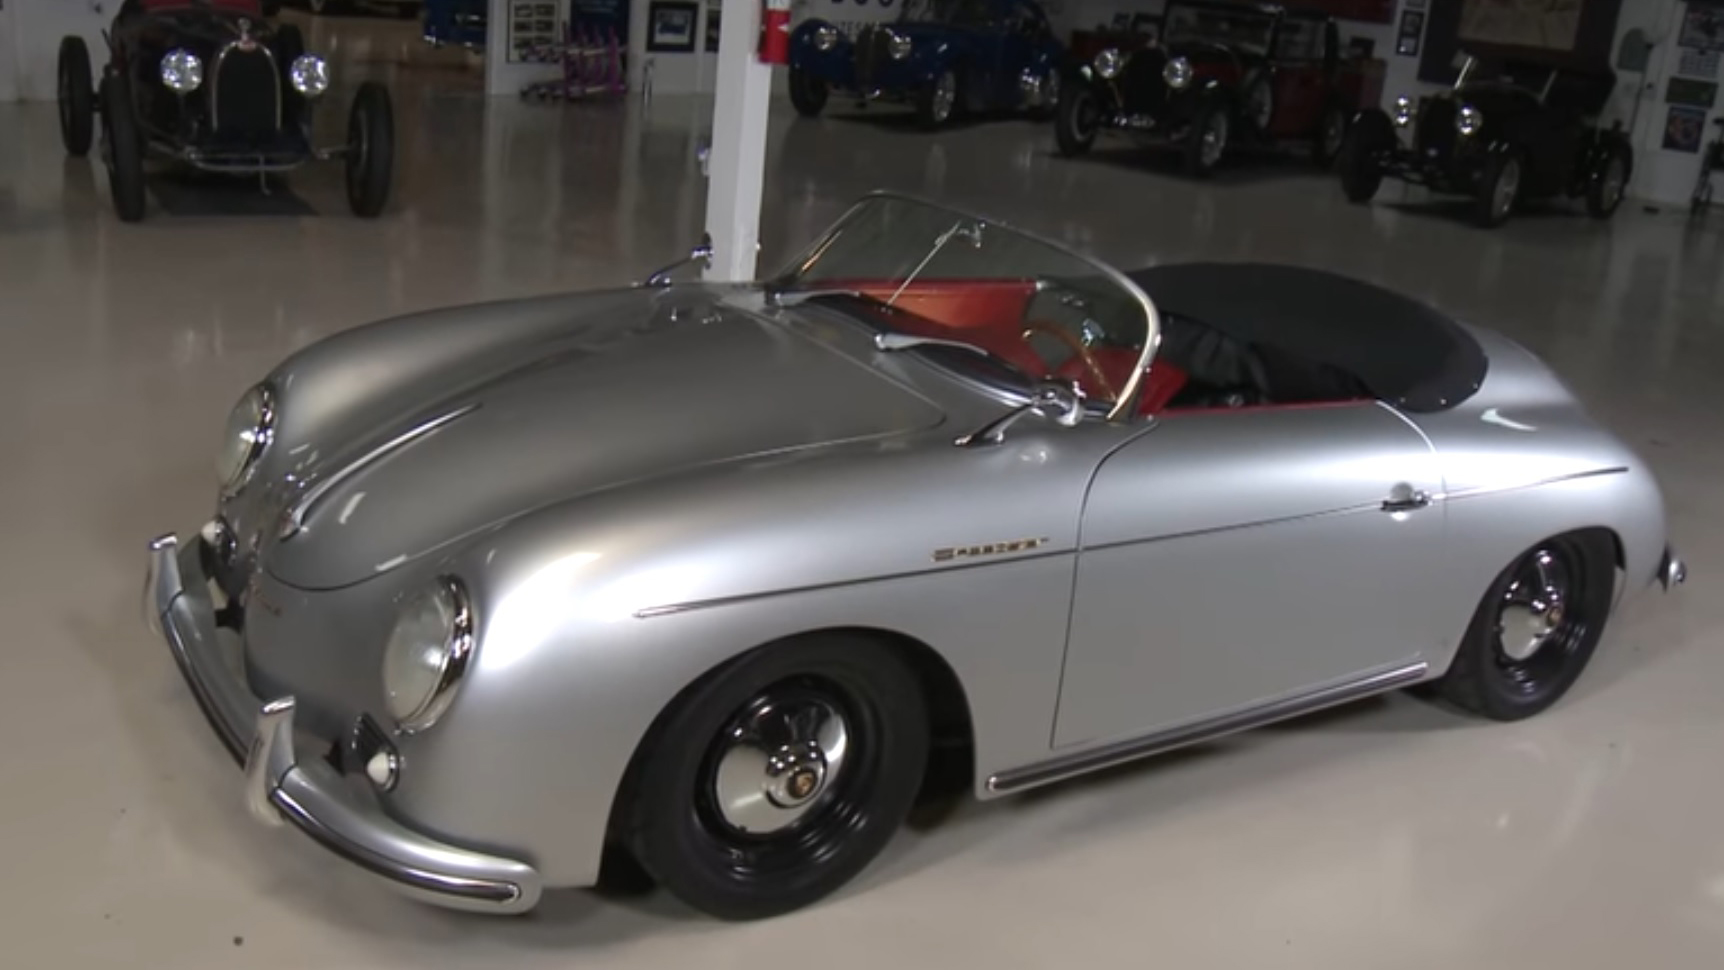 Jay Leno Drives A 356 Speedster Replica That Is Possibly Better Than The Real Thing The Drive